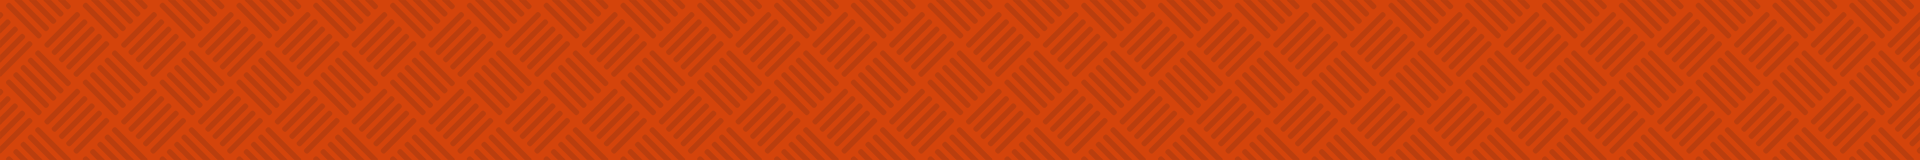 orange graphic